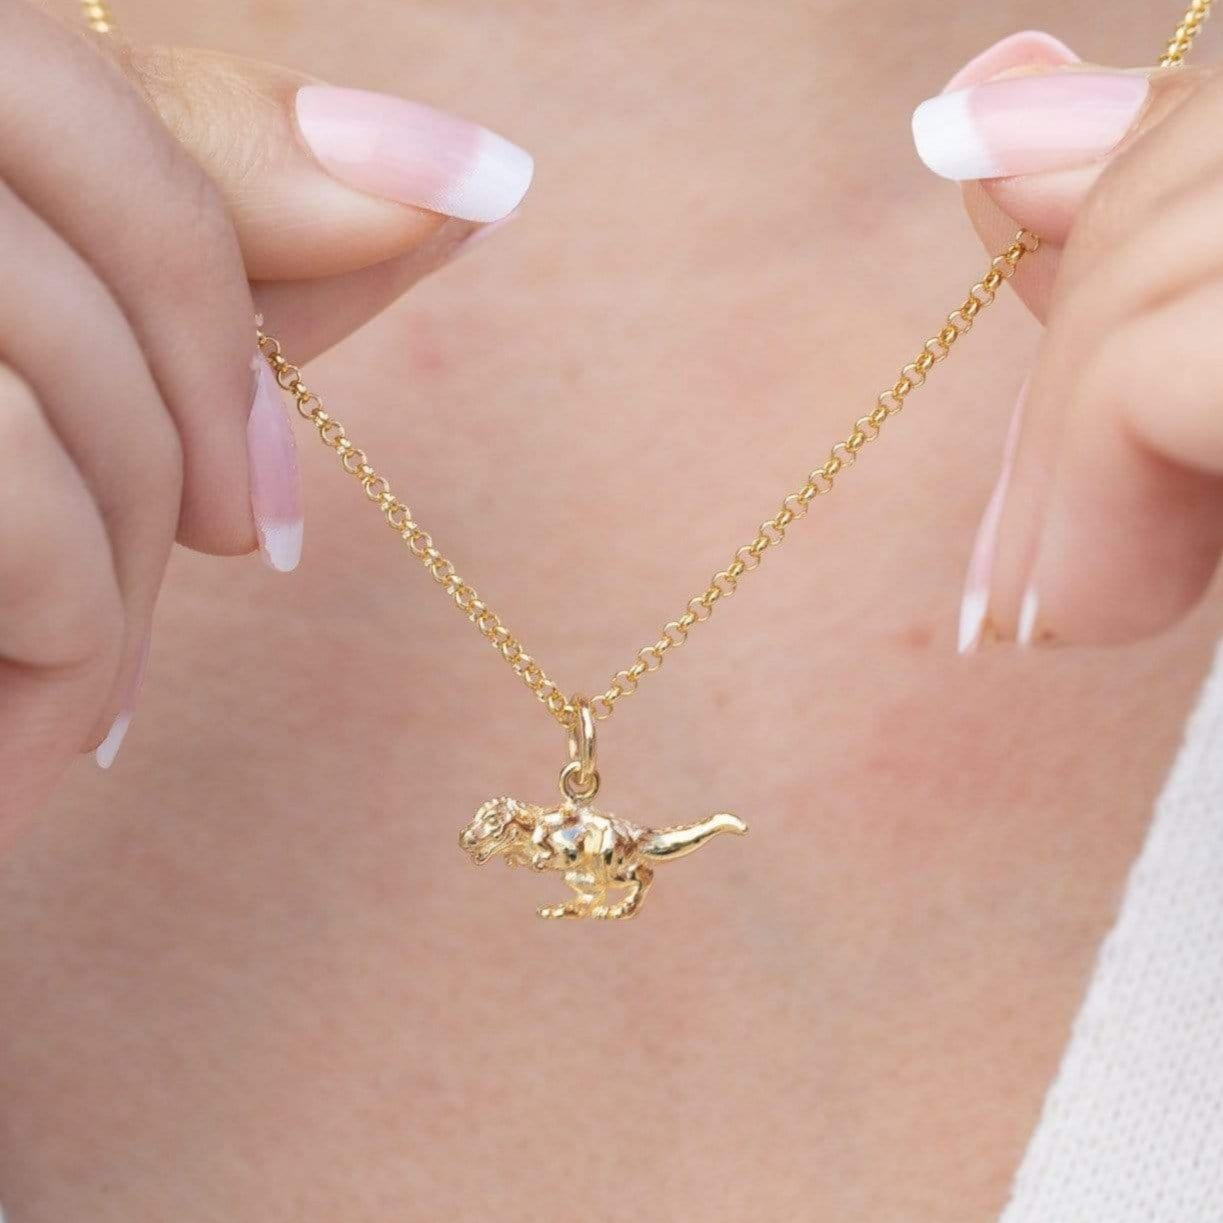 Personalised Gold Plated T-Rex Necklace - Lily Charmed